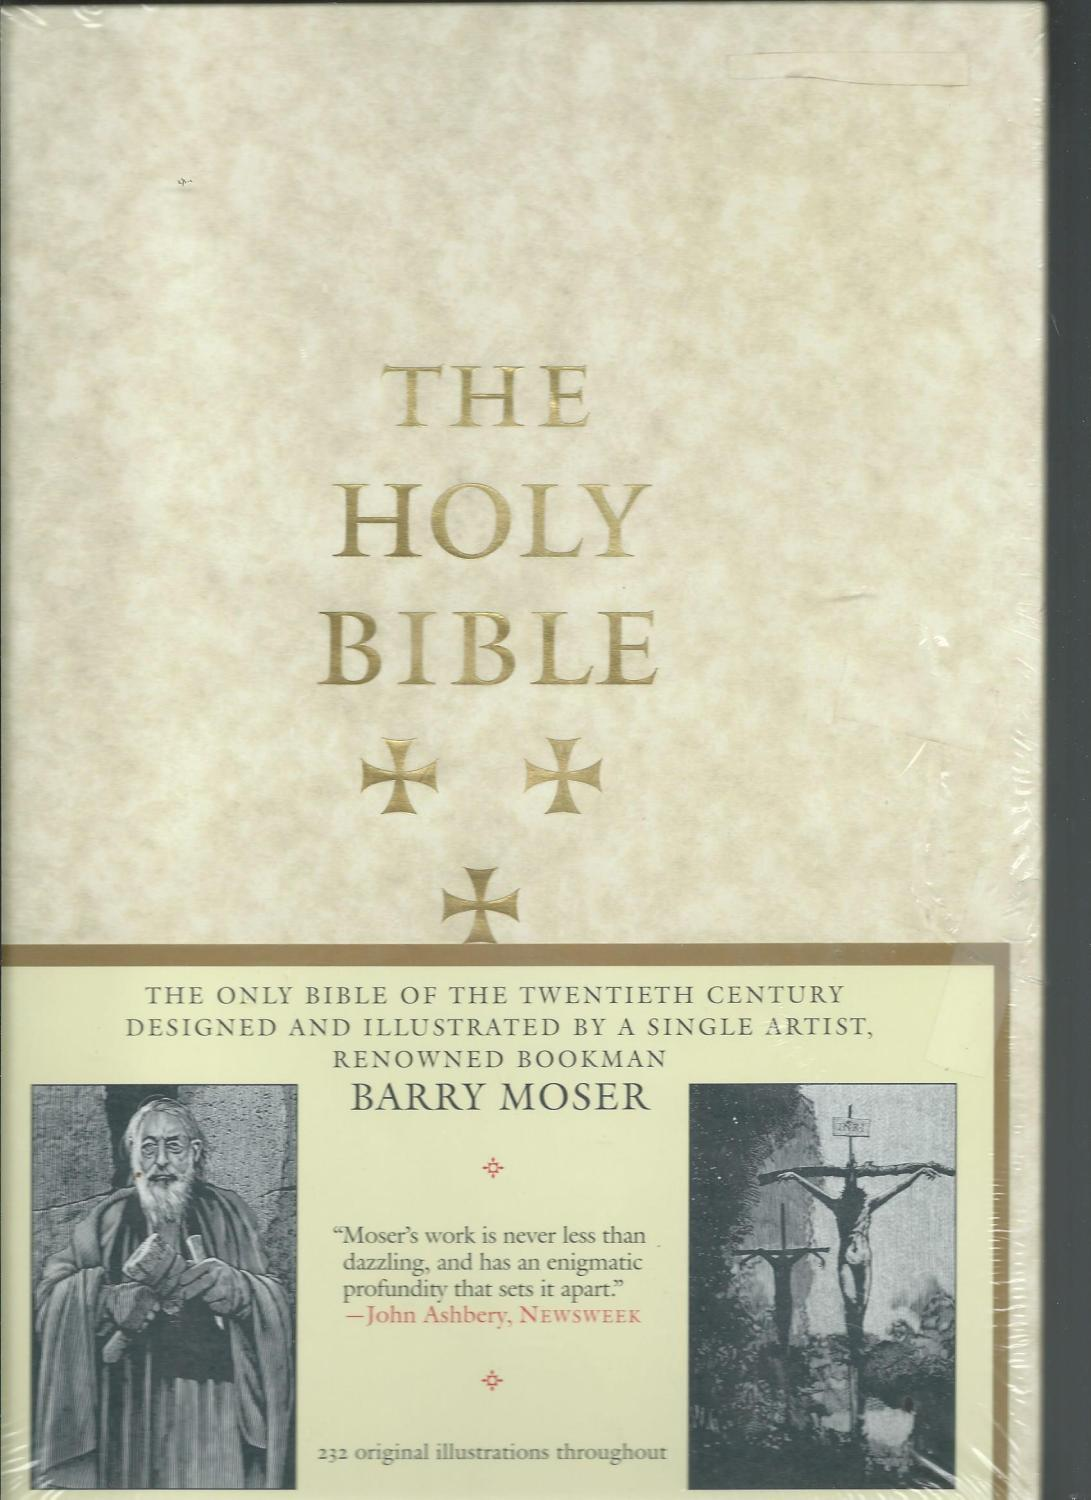 The Holy Bible: King James Version / The